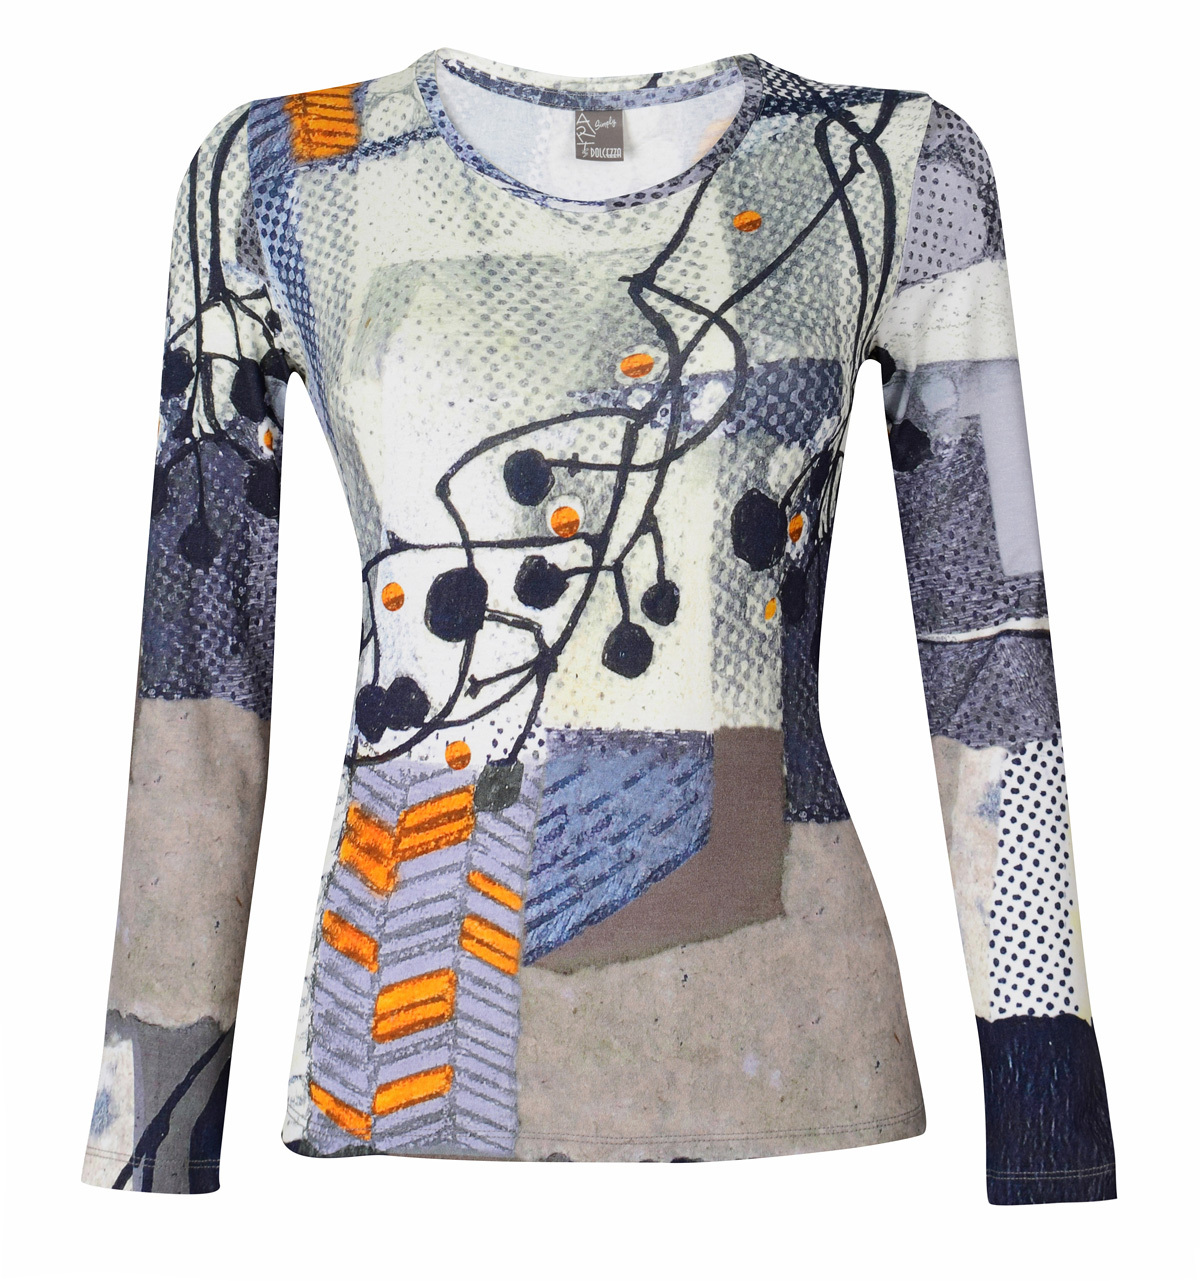 Simply Art Dolcezza: Incredibly Dandy Dragonfly Abstract Art Tunic SOLD OUT Dolcezza_SimplyArt_59690